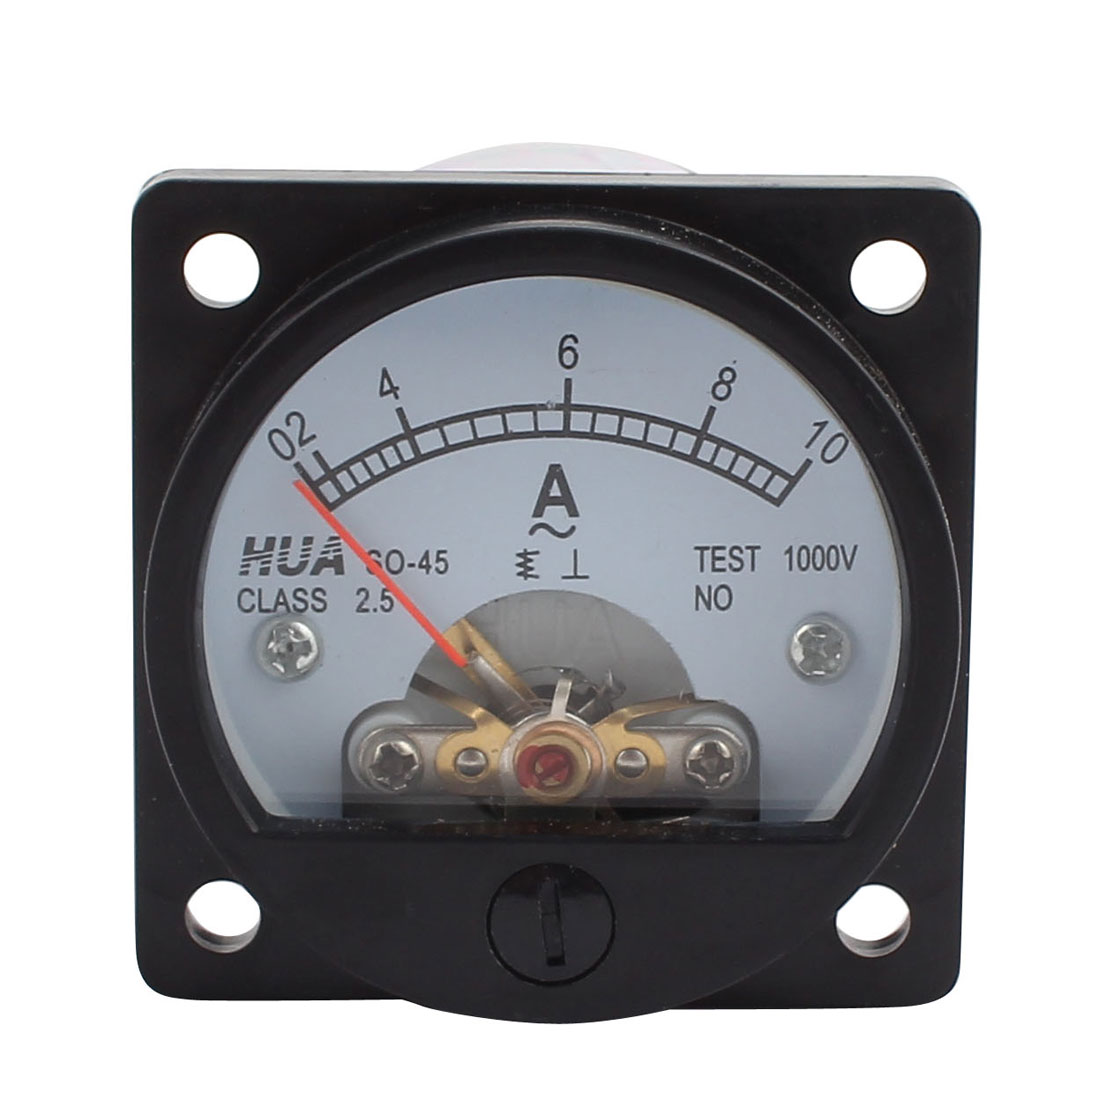 Round Analog Panel Meters : Uxcell class accuracy ac a round analog panel